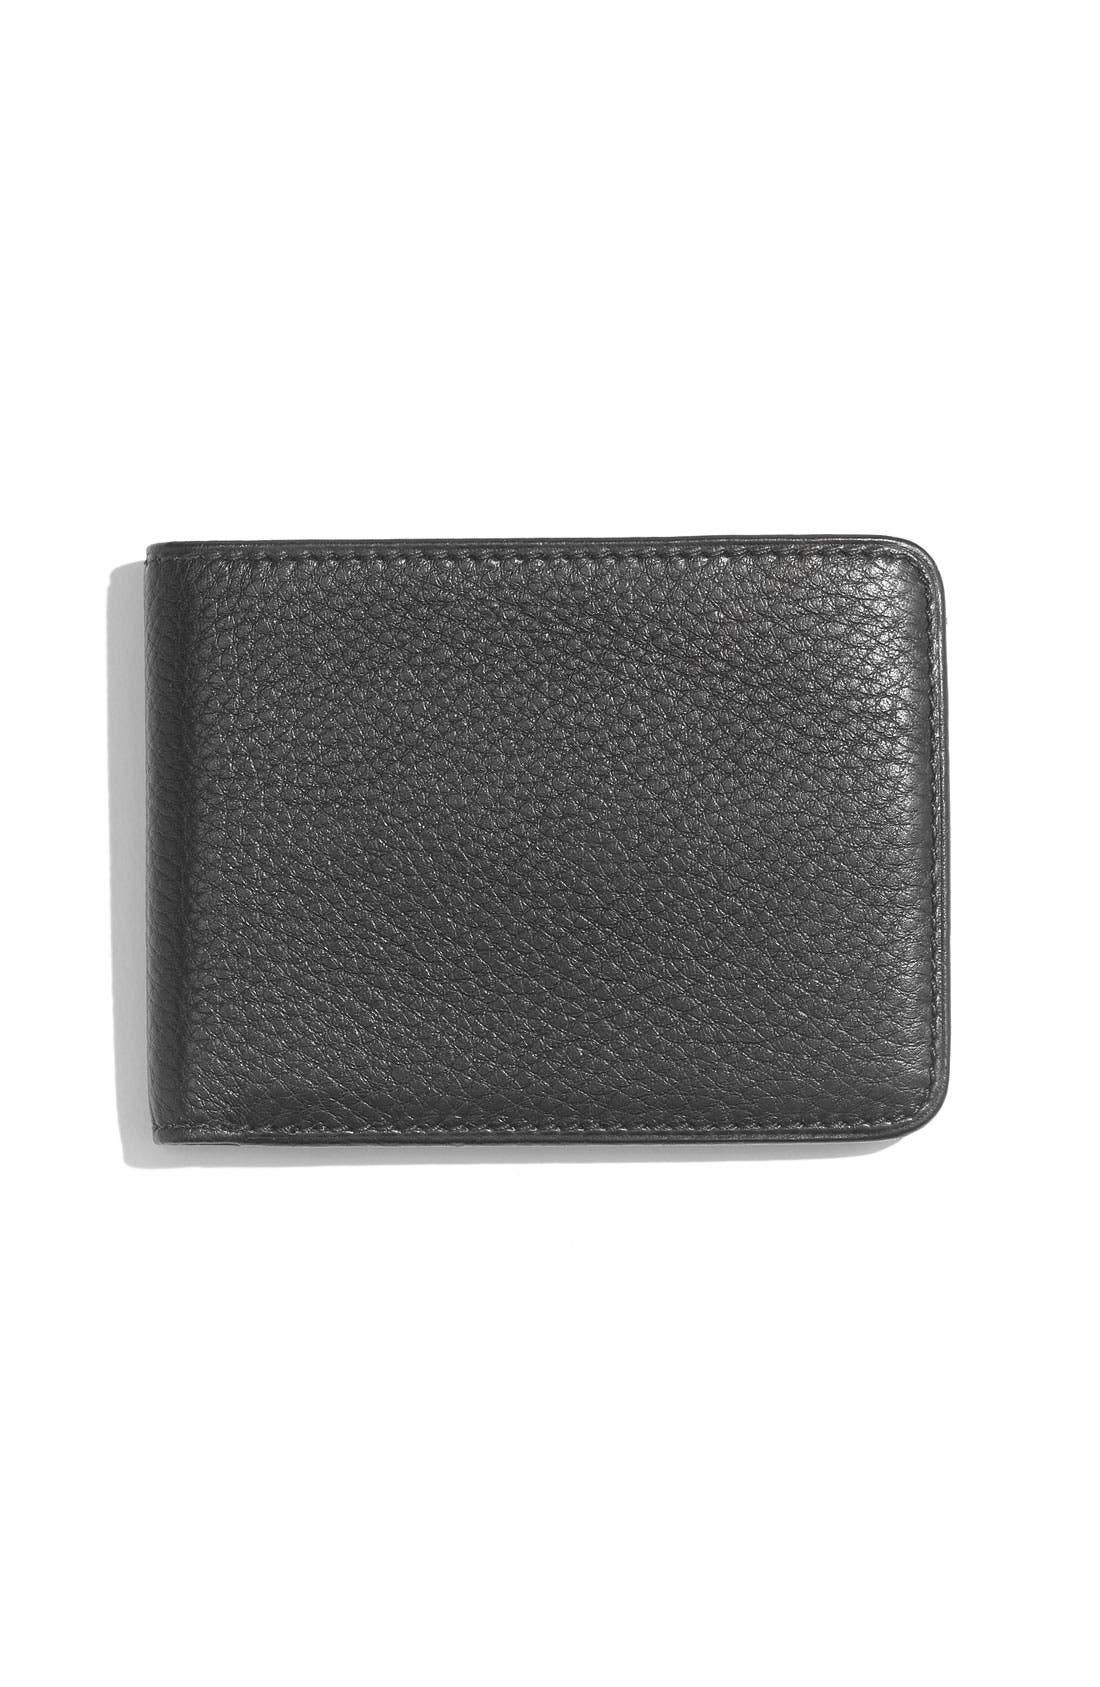 Alternate Image 2  - Bosca 'Deluxe Executive' Shrunken Leather Wallet